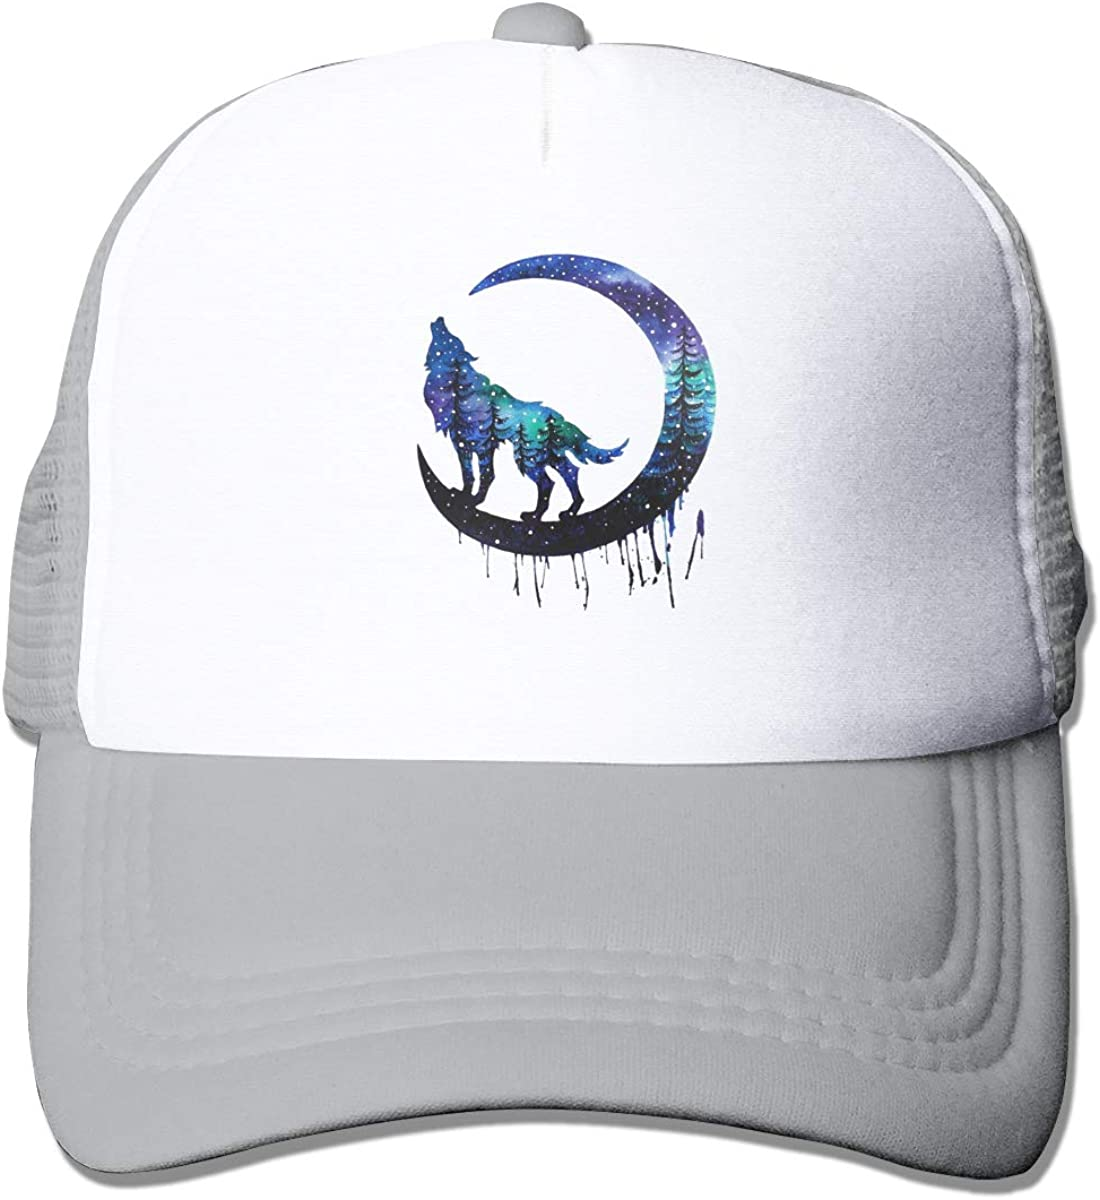 Zhiwei Station Wolf and Moon Unisex 3D Printed Trucker Hat Gray